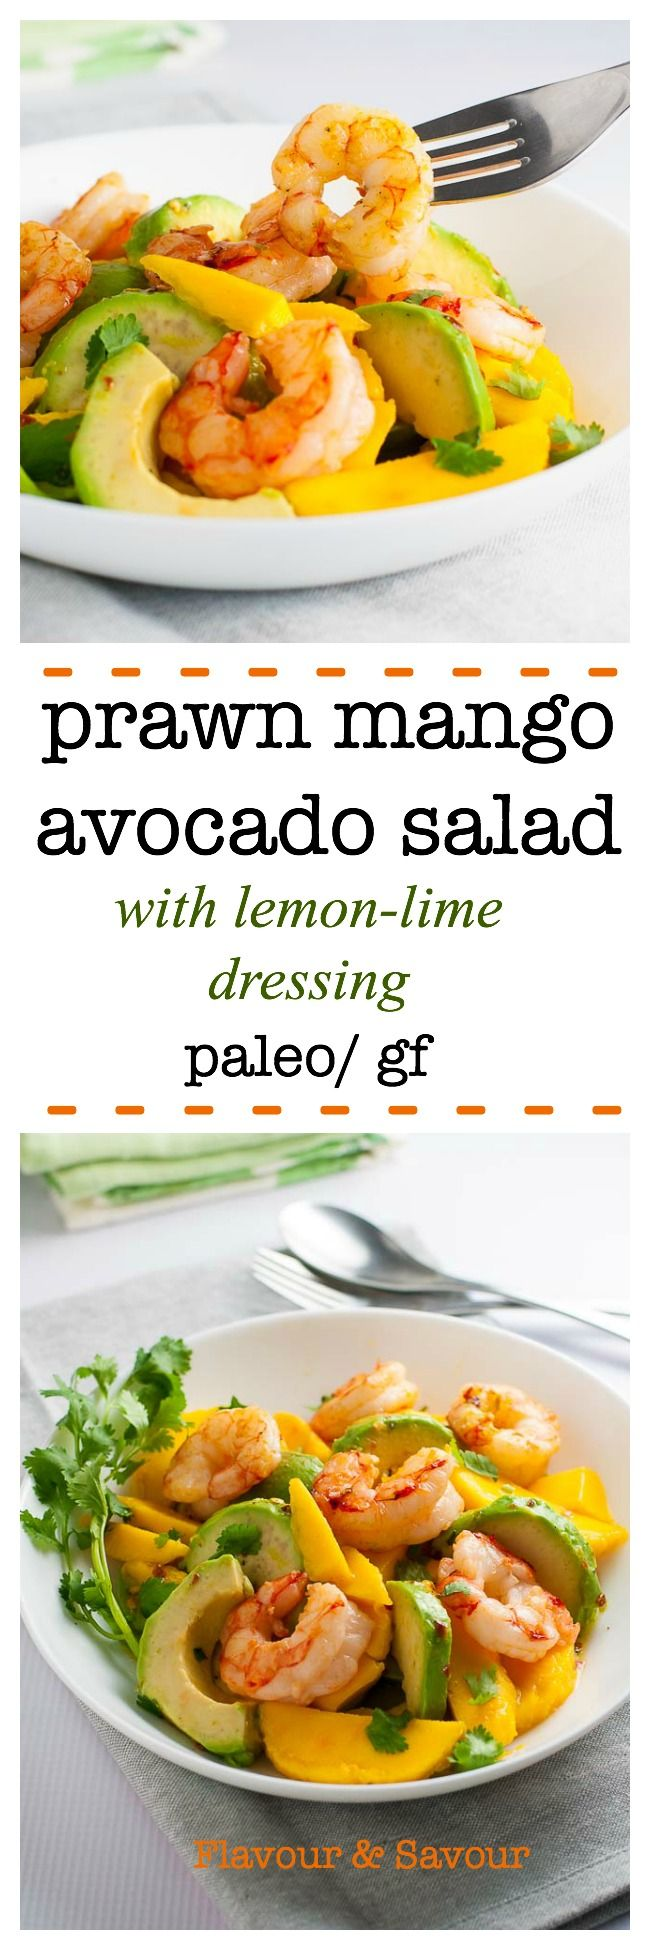 Prawn Mango Avocado Salad with Lemon Lime Dressing. Done and on the table in 15 minutes! Paleo/ gluten-free. via @enessman